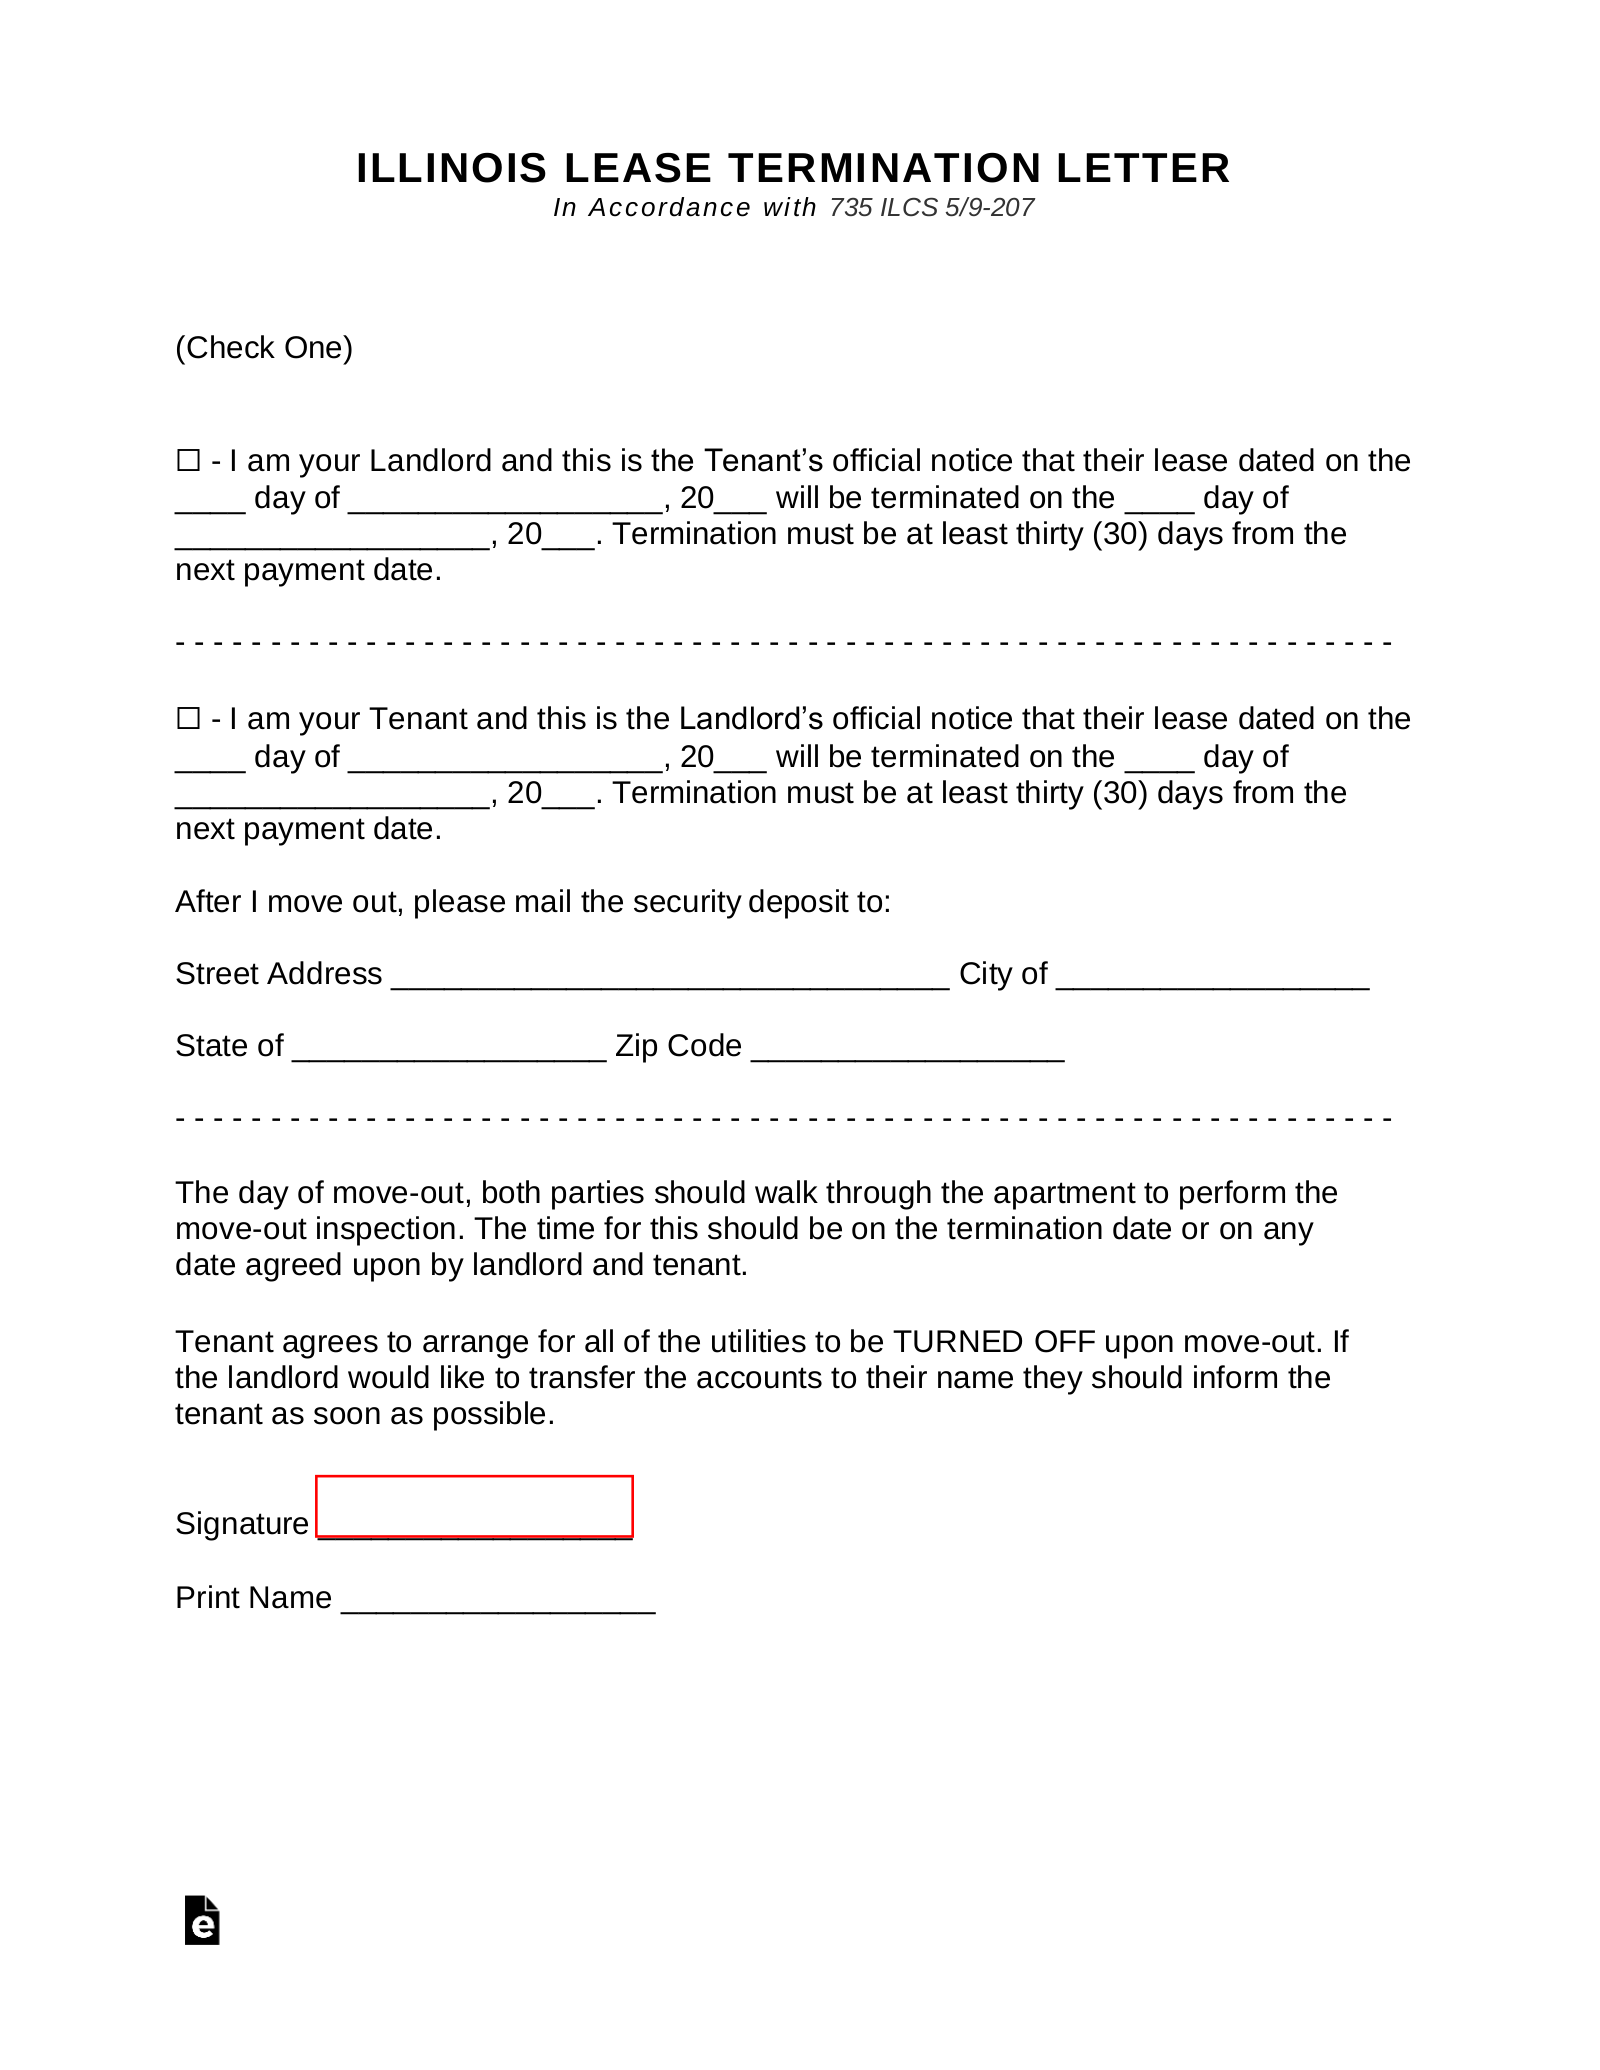 Illinois Lease Termination Letter Form | 30-Day Notice